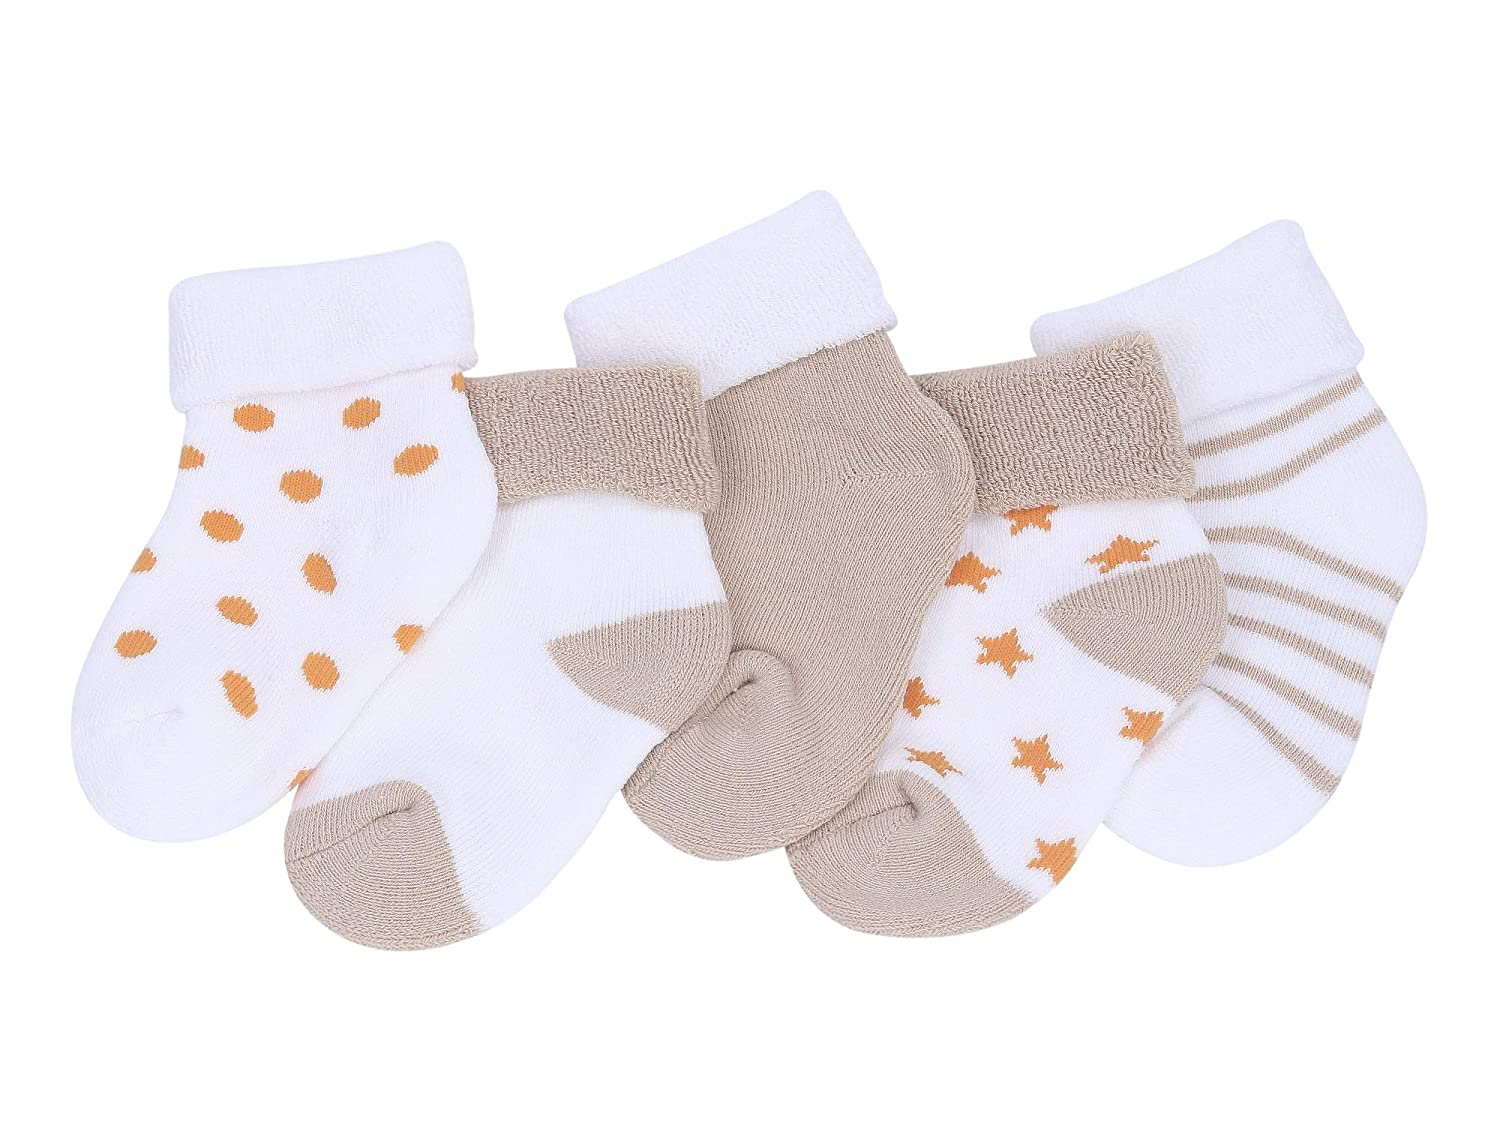 5er Pack Baby Cotton Socks set Infants Toddler Kids Breathable Lovely 0-10 Years